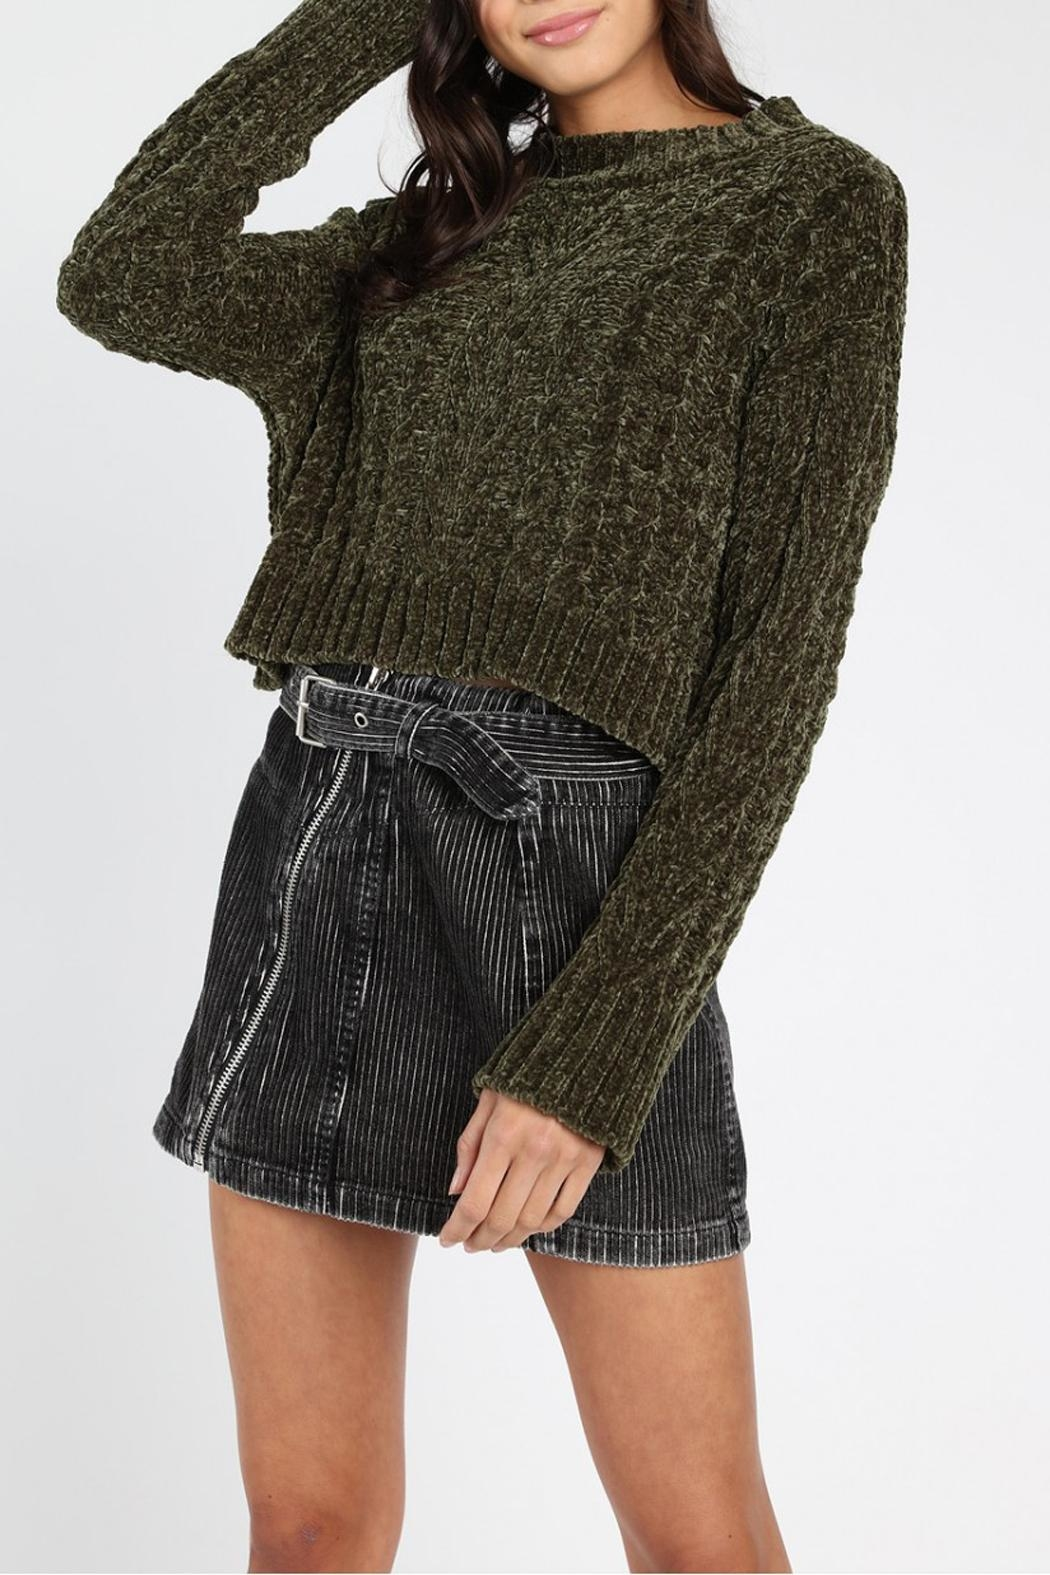 Honey Punch Olvera Chunky-Knit Sweater - Front Full Image